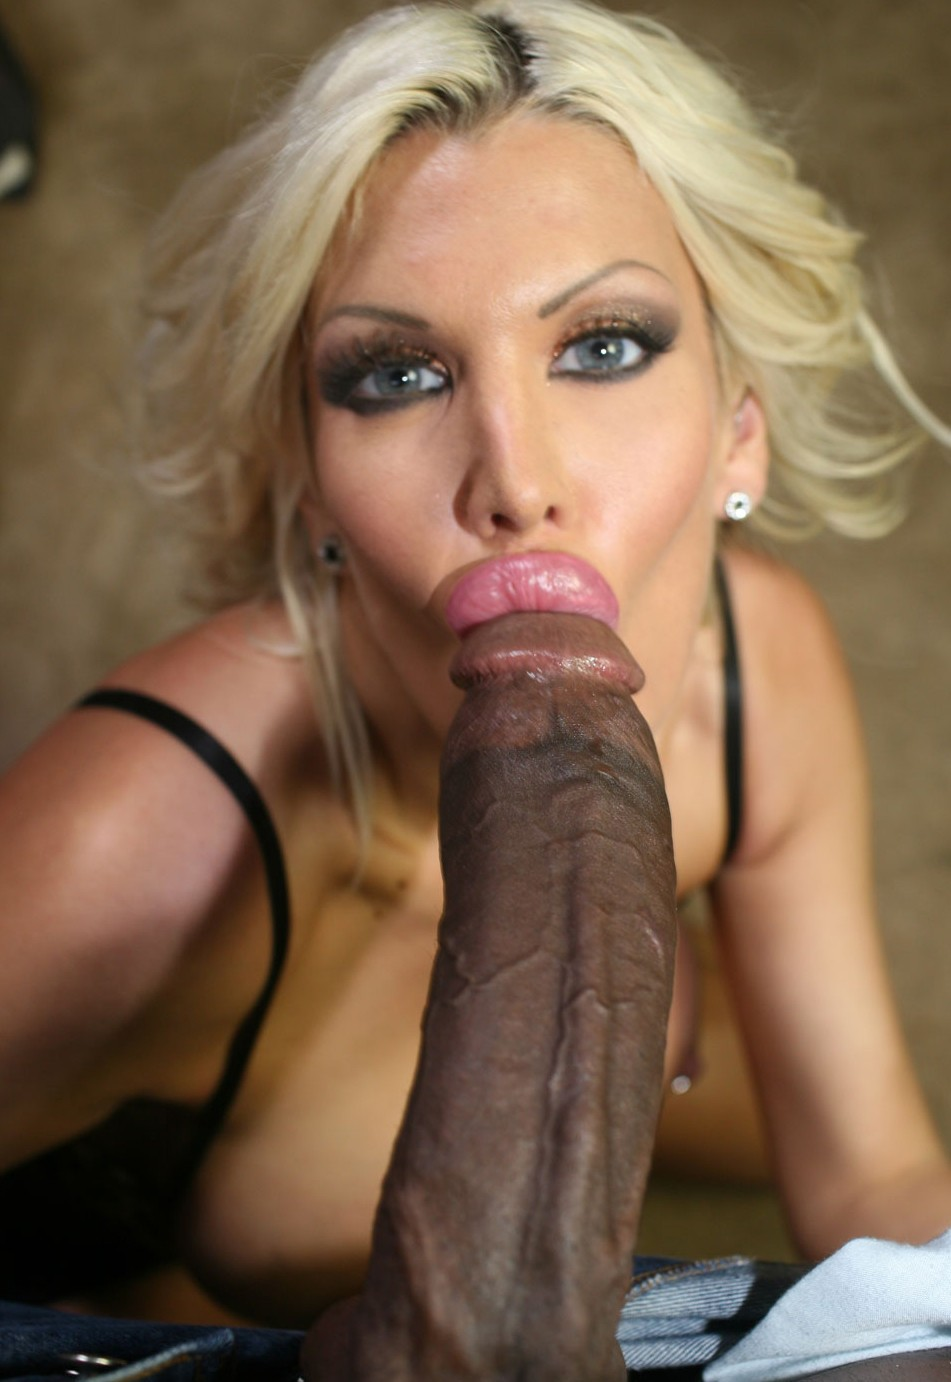 cheaply got, black ebony creampie think, that you